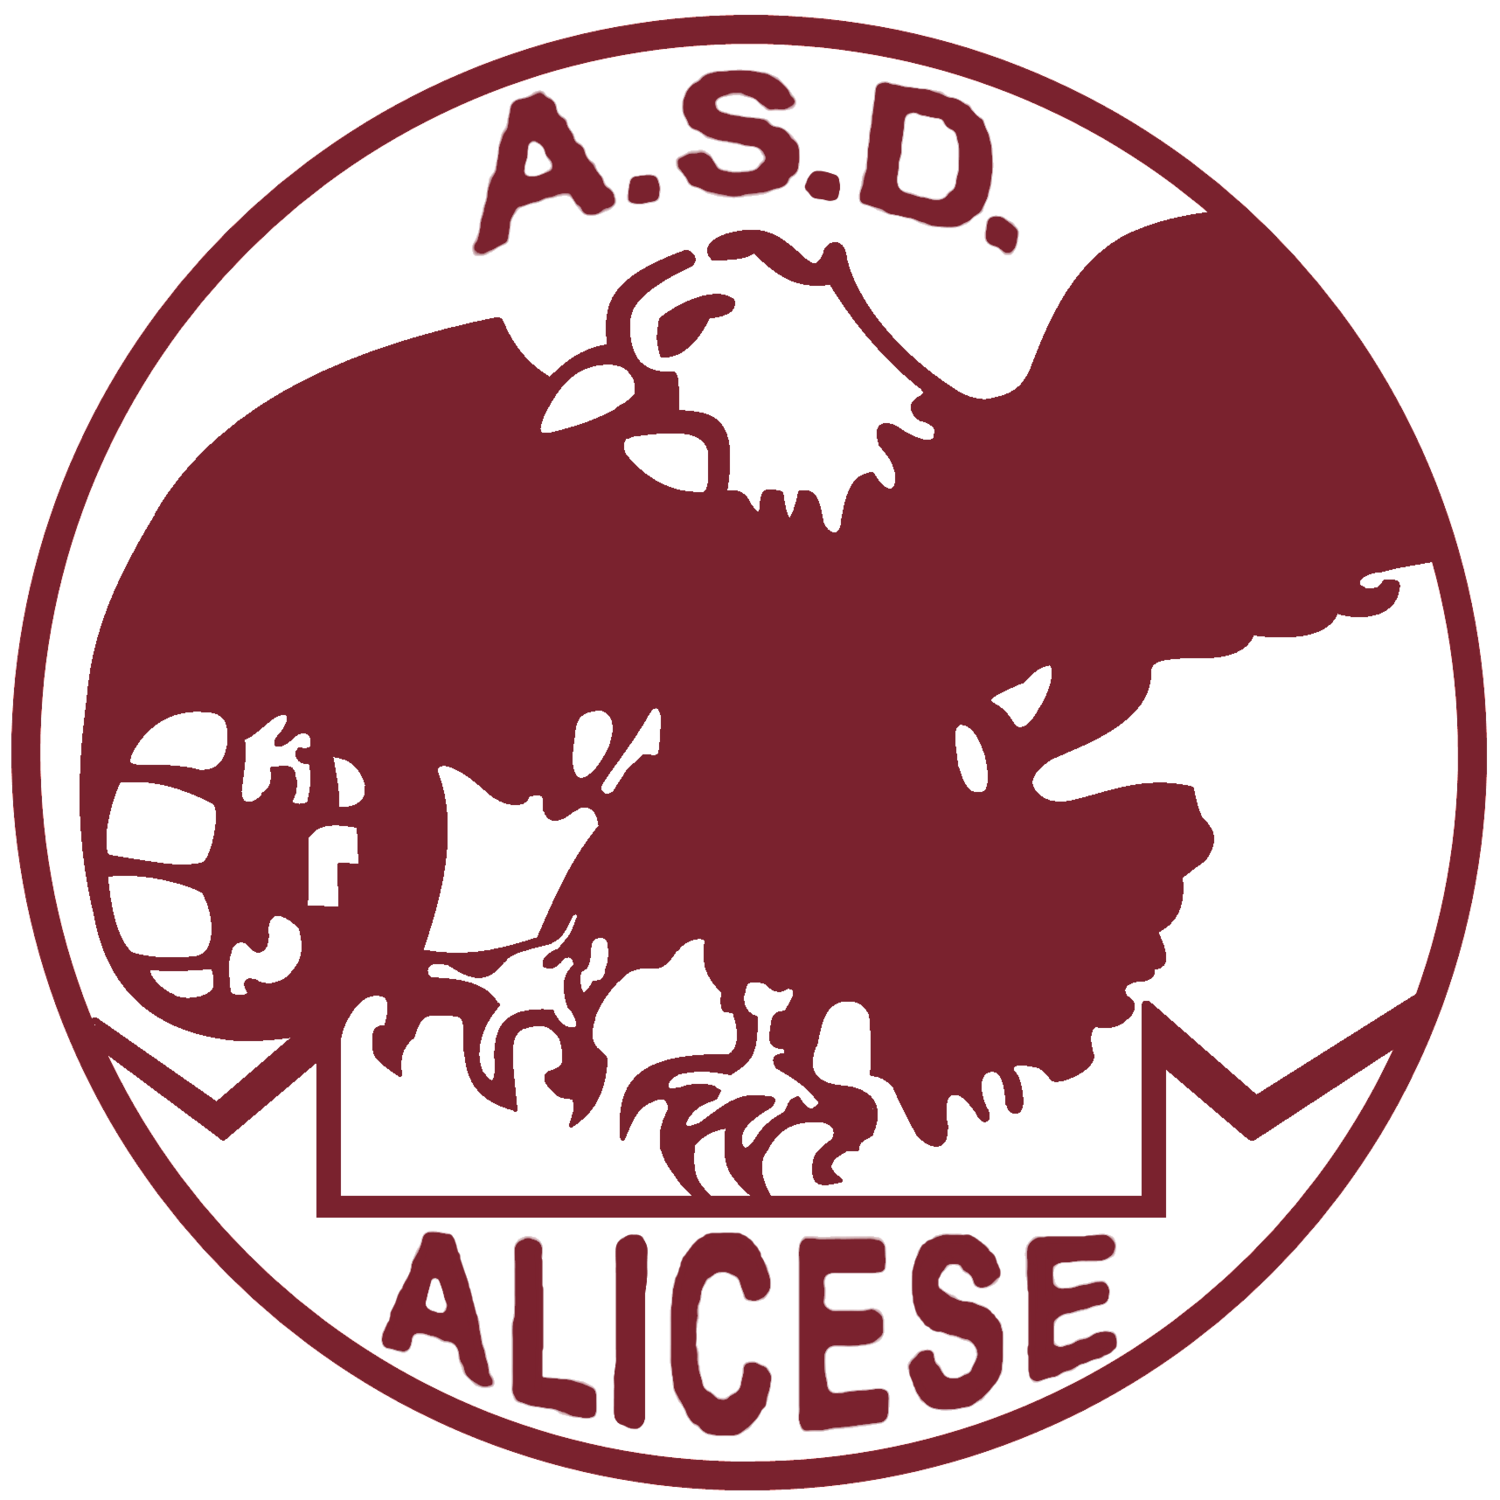 A.S.D. Alicese